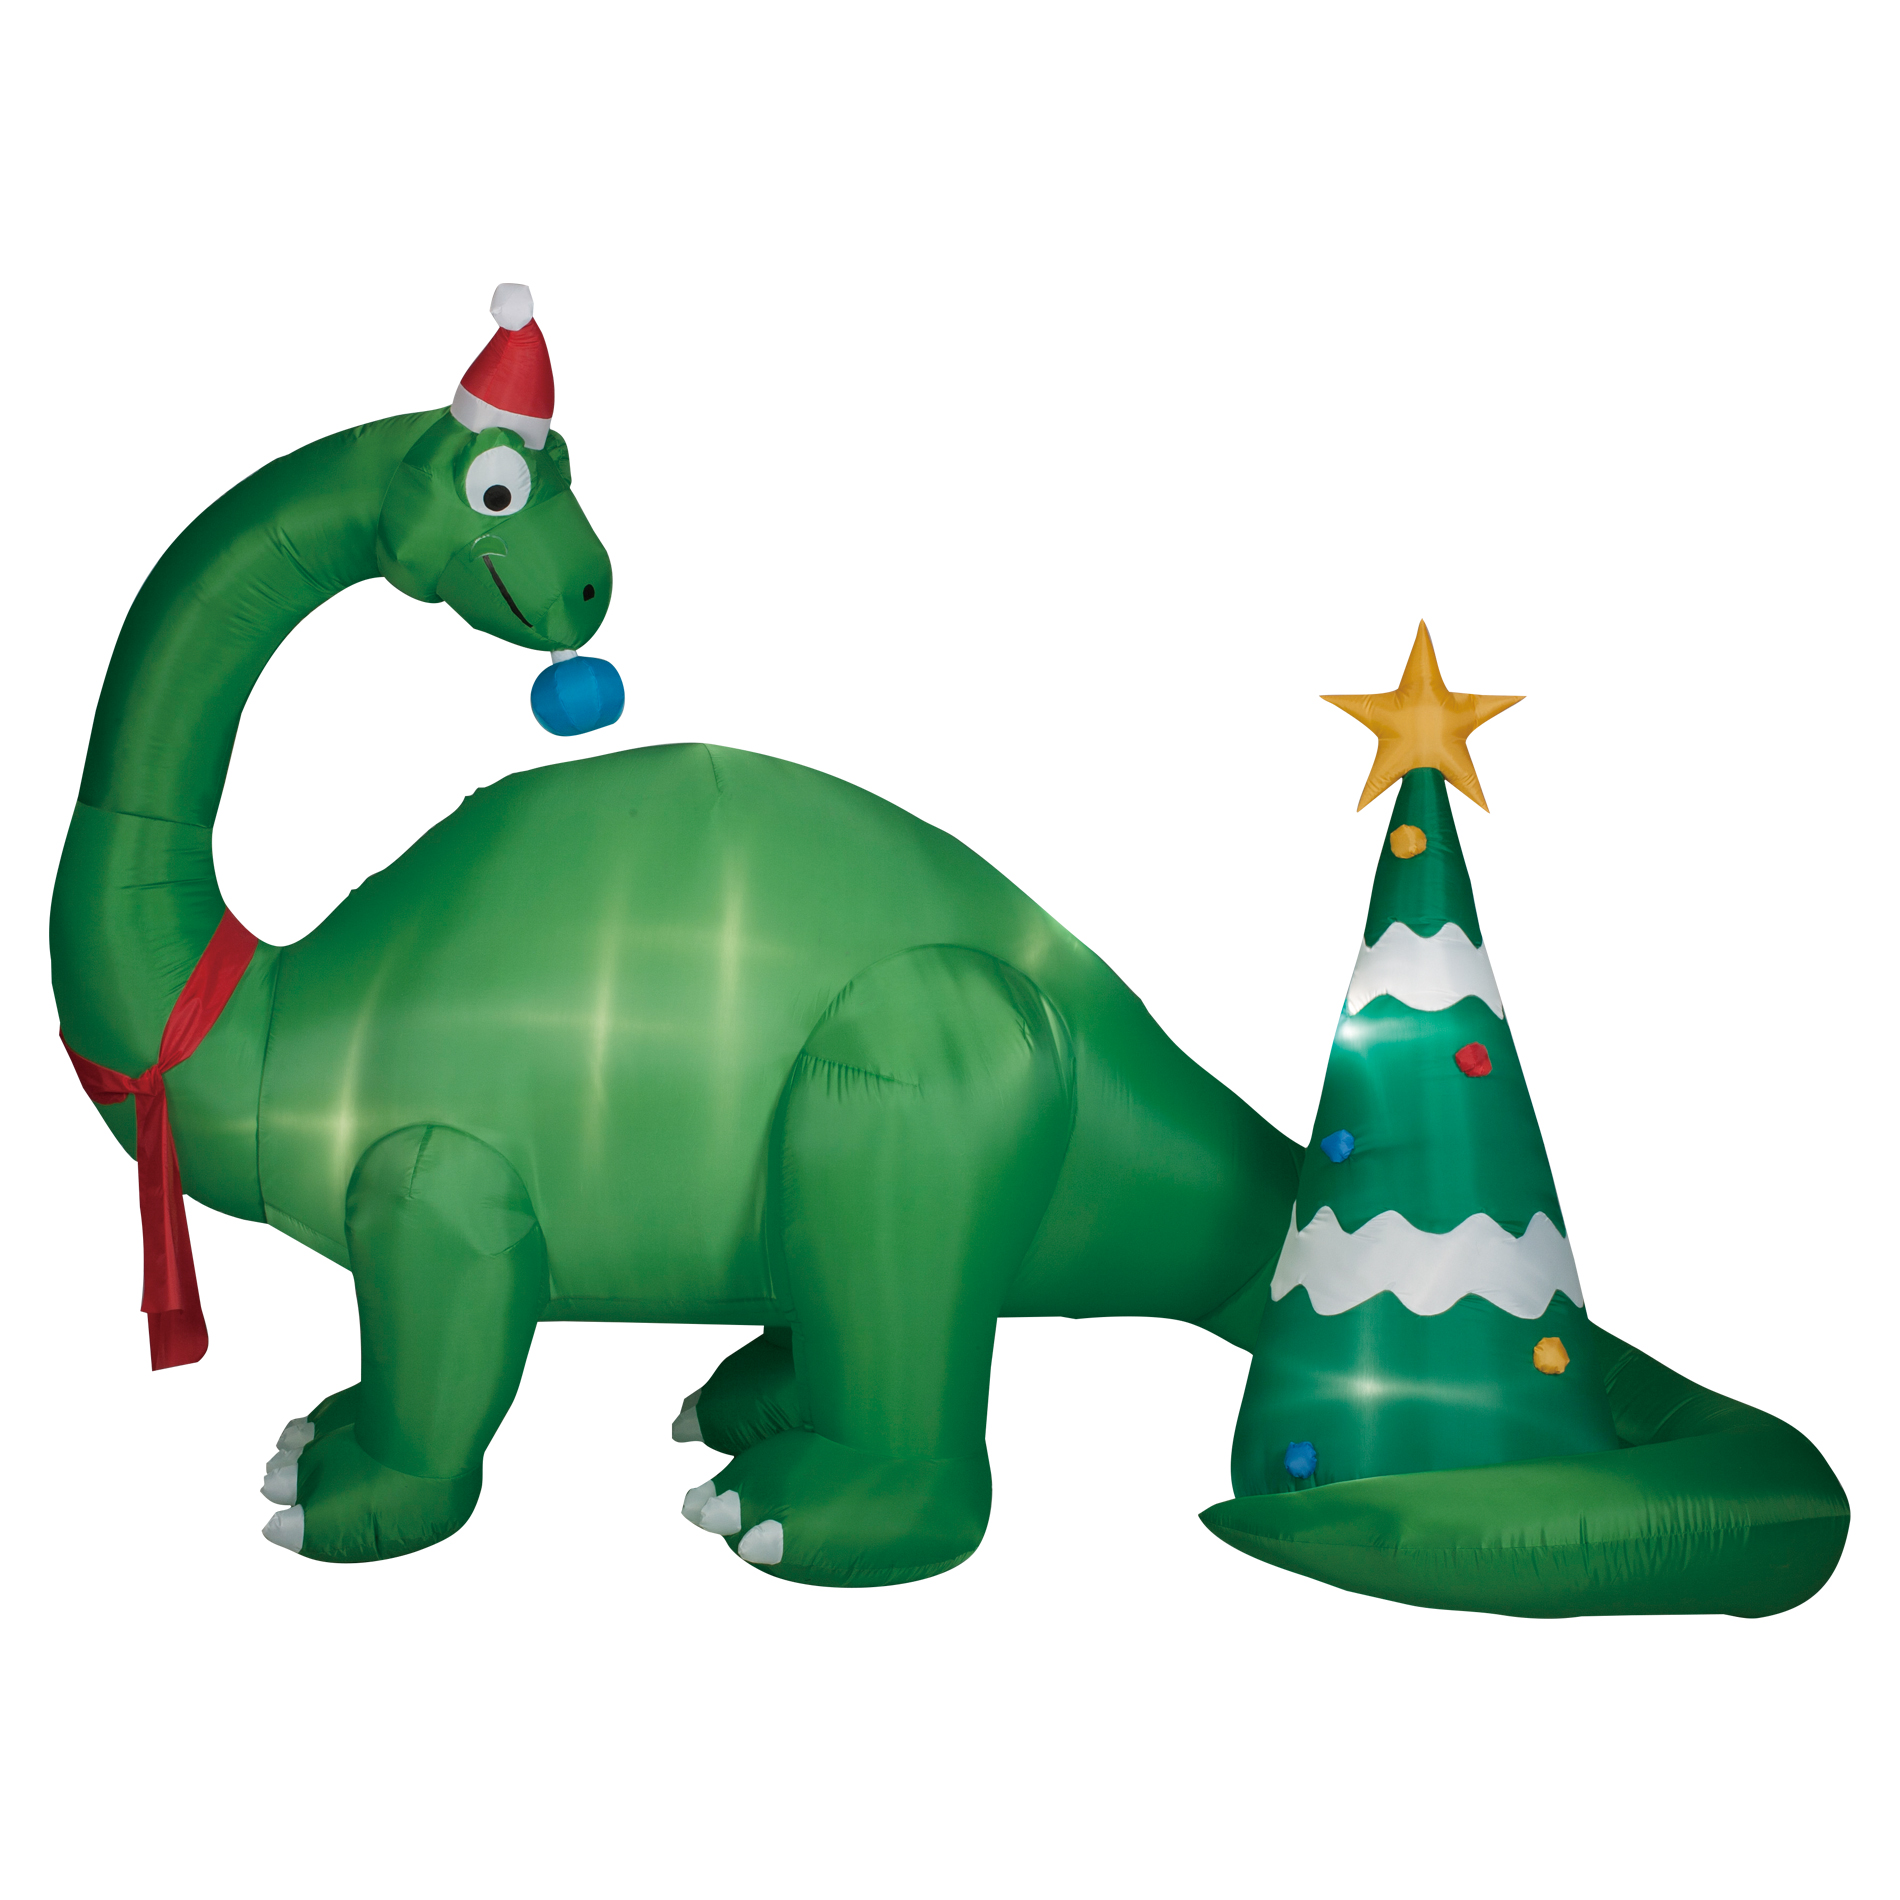 95 foot brontosaurus scene inflatable decoration - Dinosaur Christmas Decorations